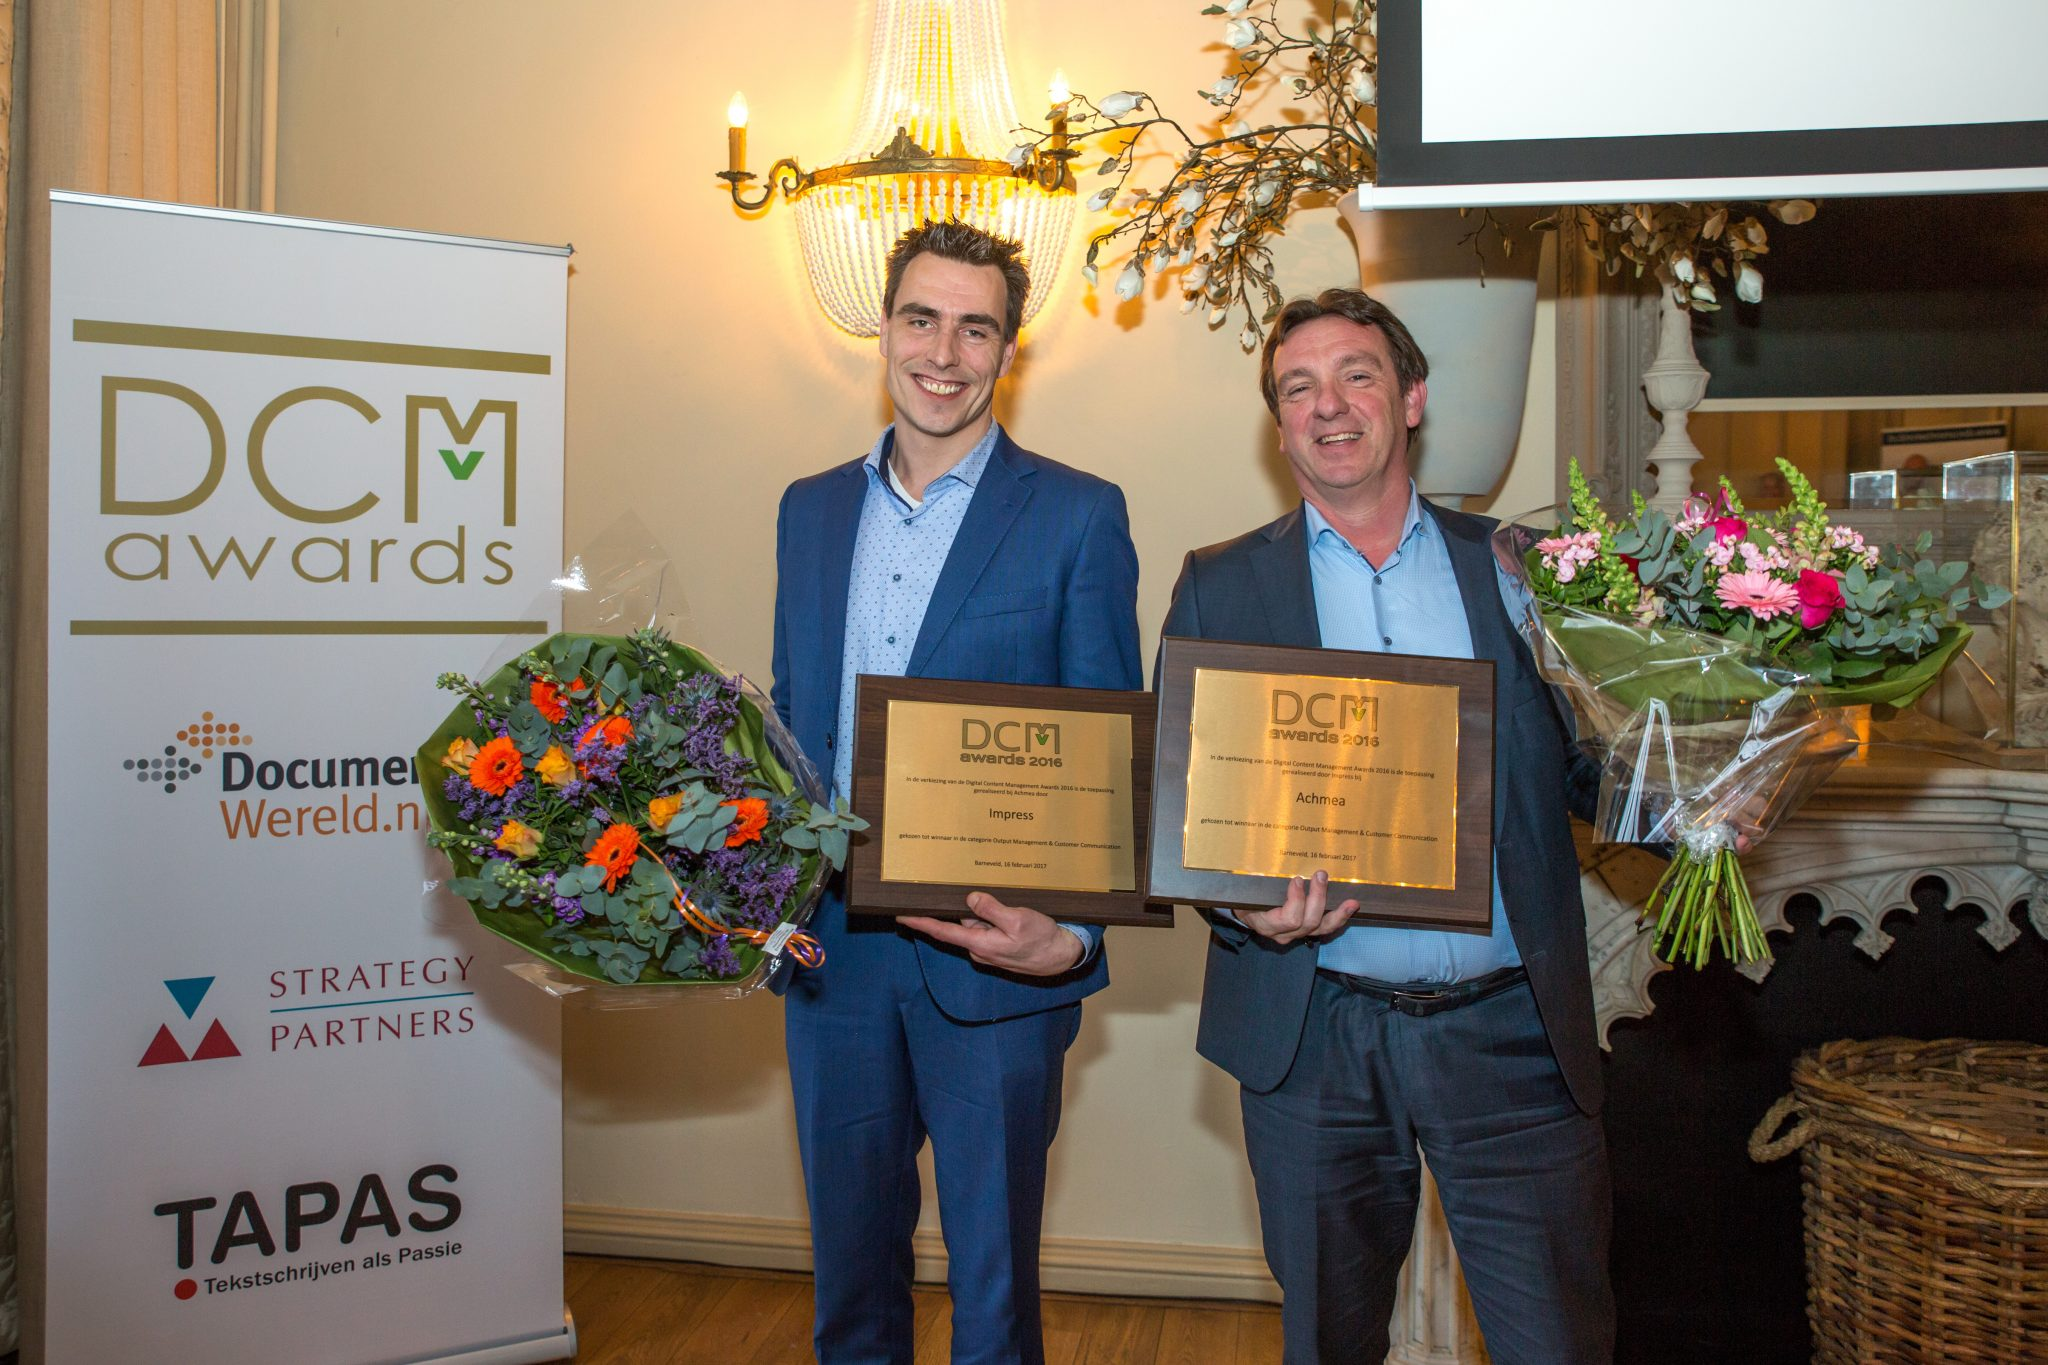 Impress wint DCM Award 2016